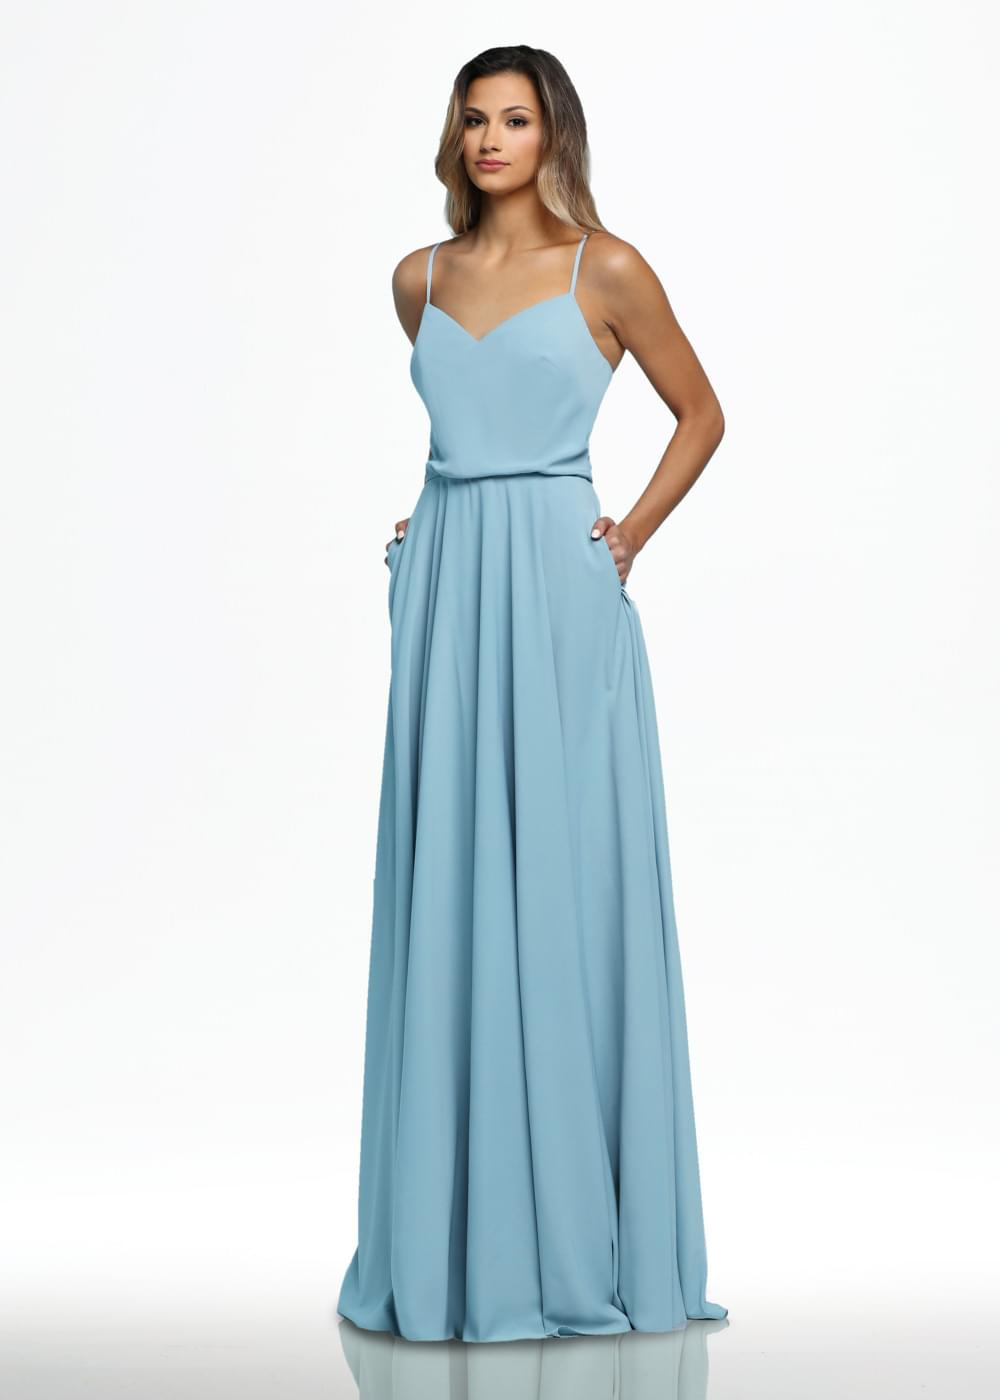 80110 Dresses with Straps By Ashdon